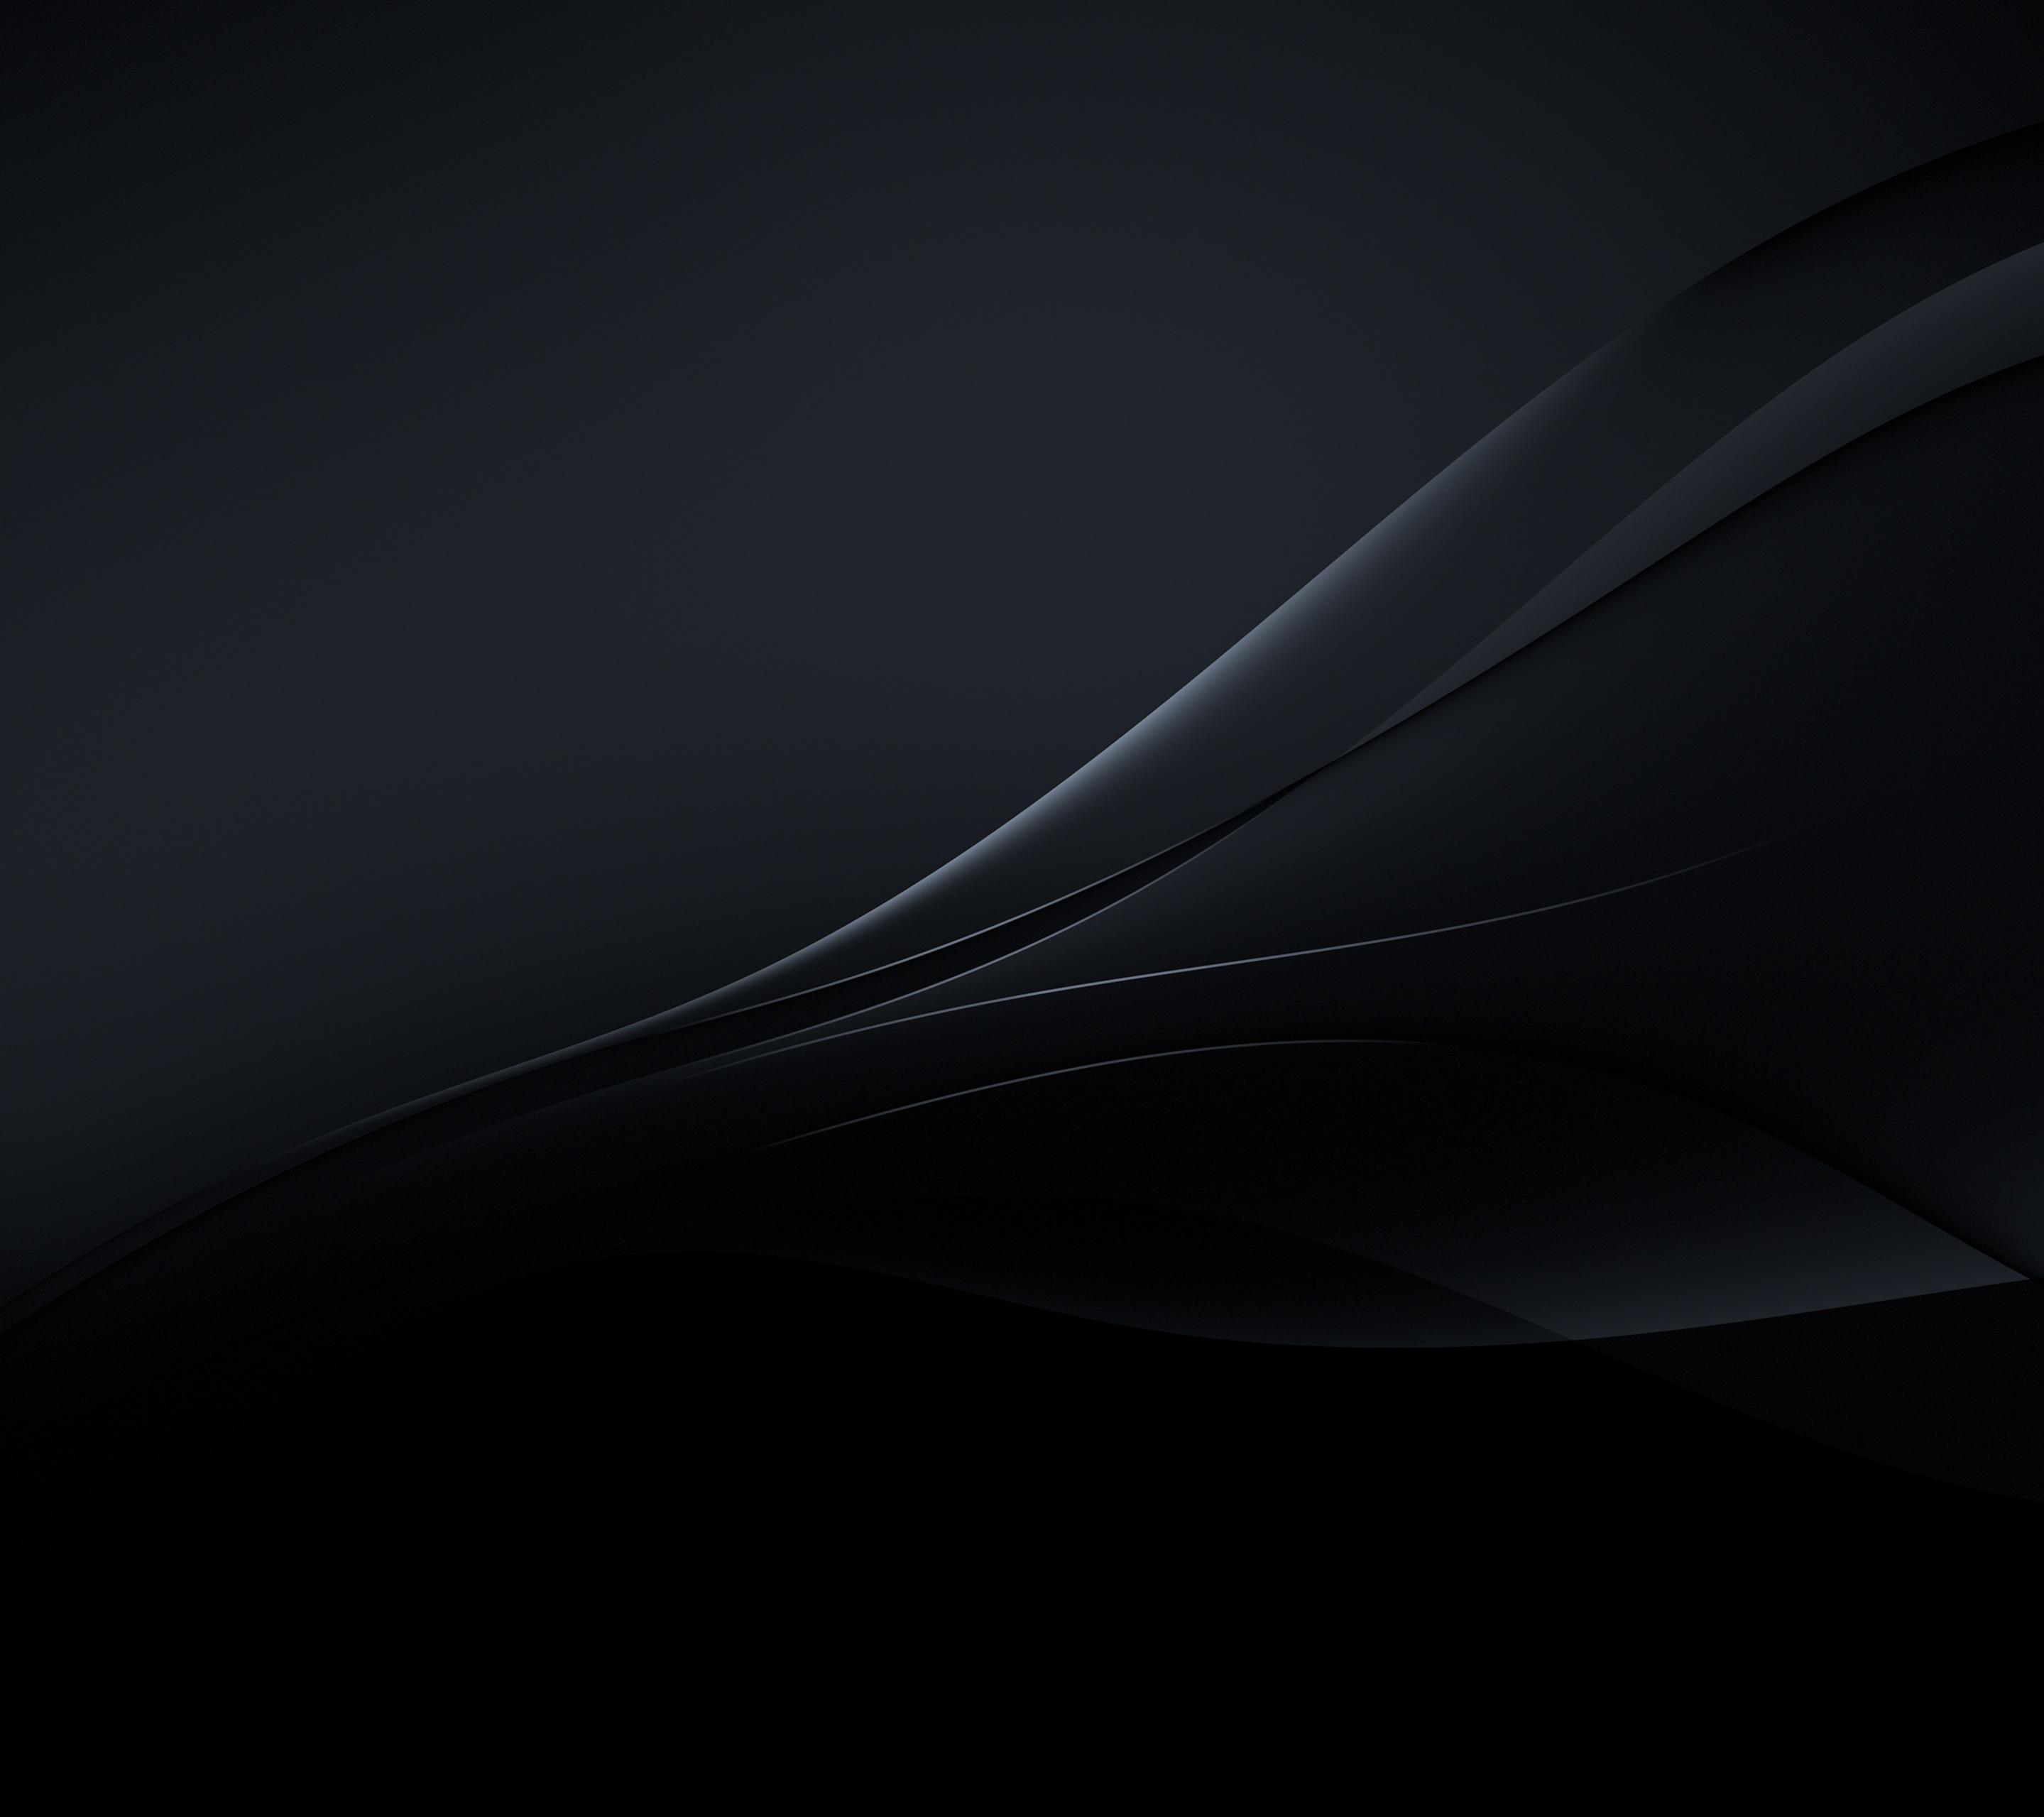 Xperia Z4 Wallpaper in Black color